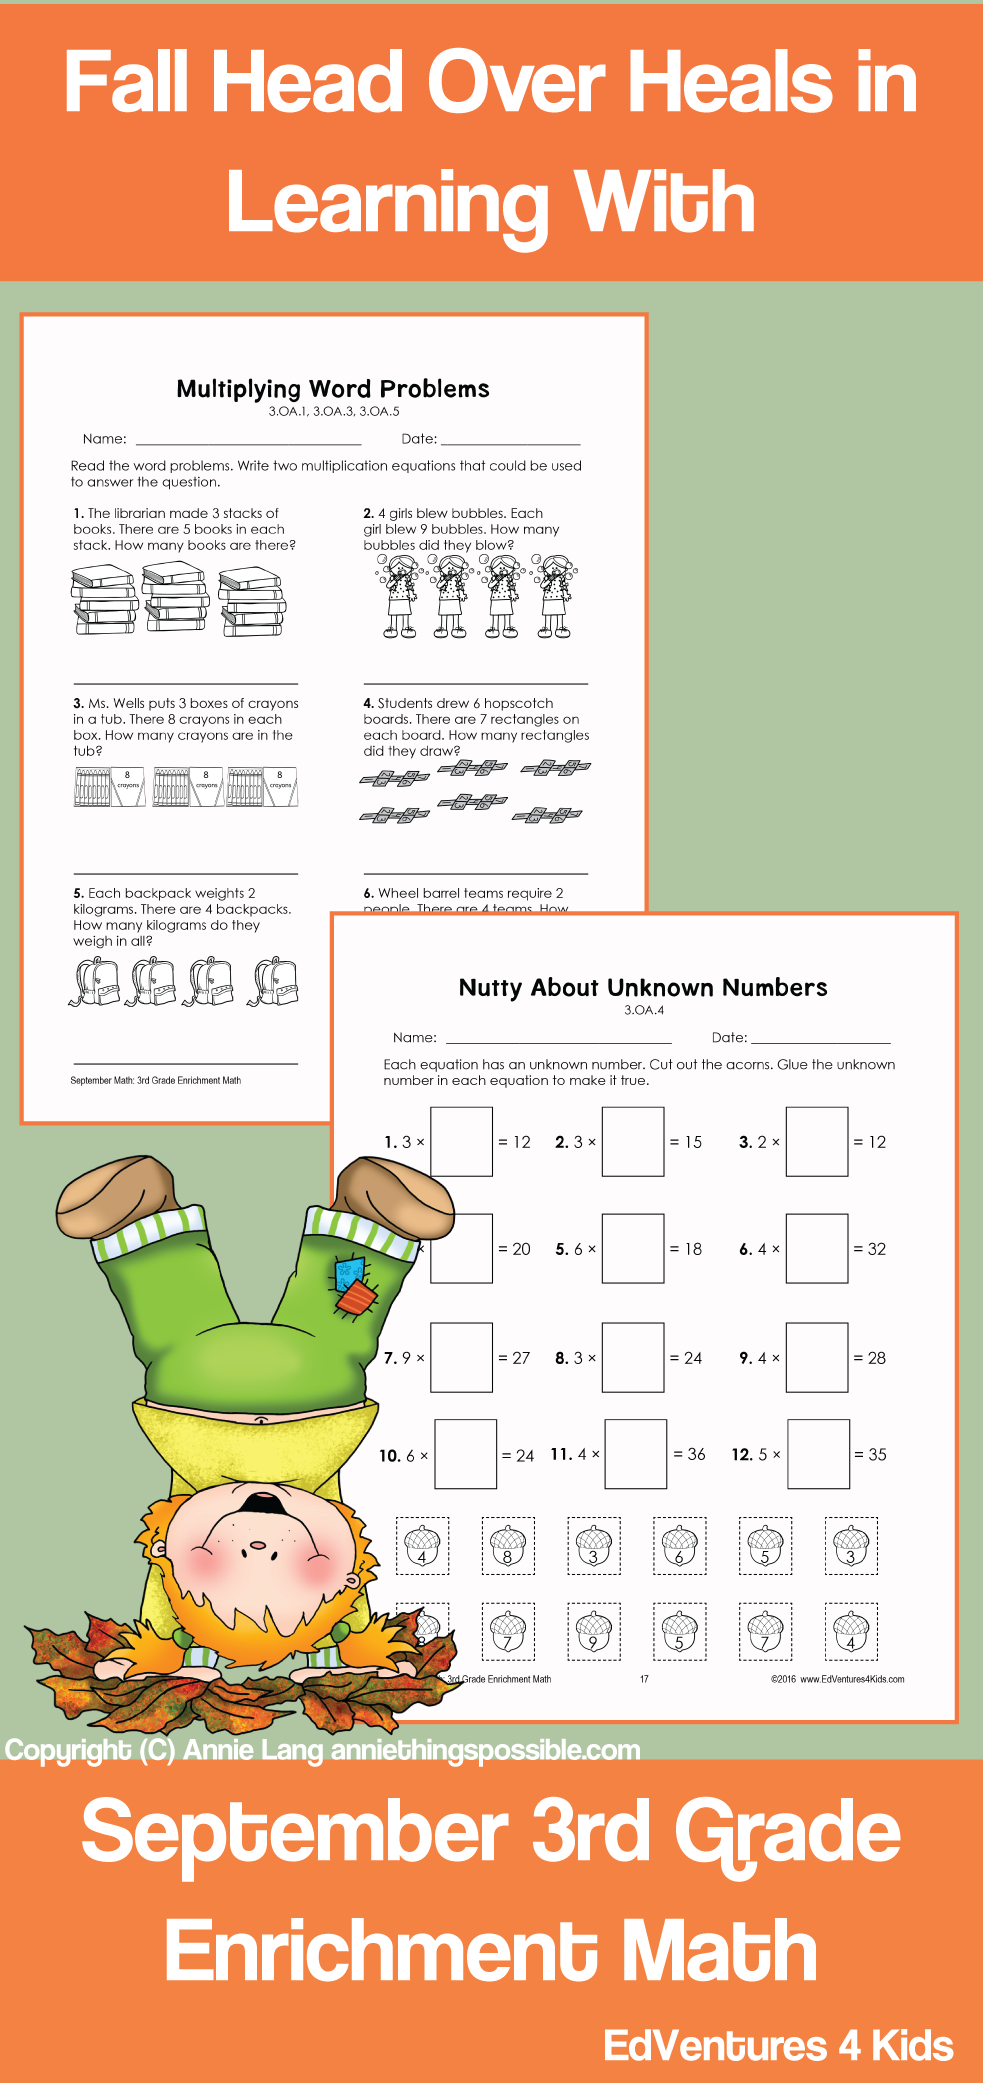 September Enrichment Math For 3rd Grade Is A Collection Of 15 Challenging Enriching Printable Math Worksheets Social Studies Worksheets Math Enrichment Math